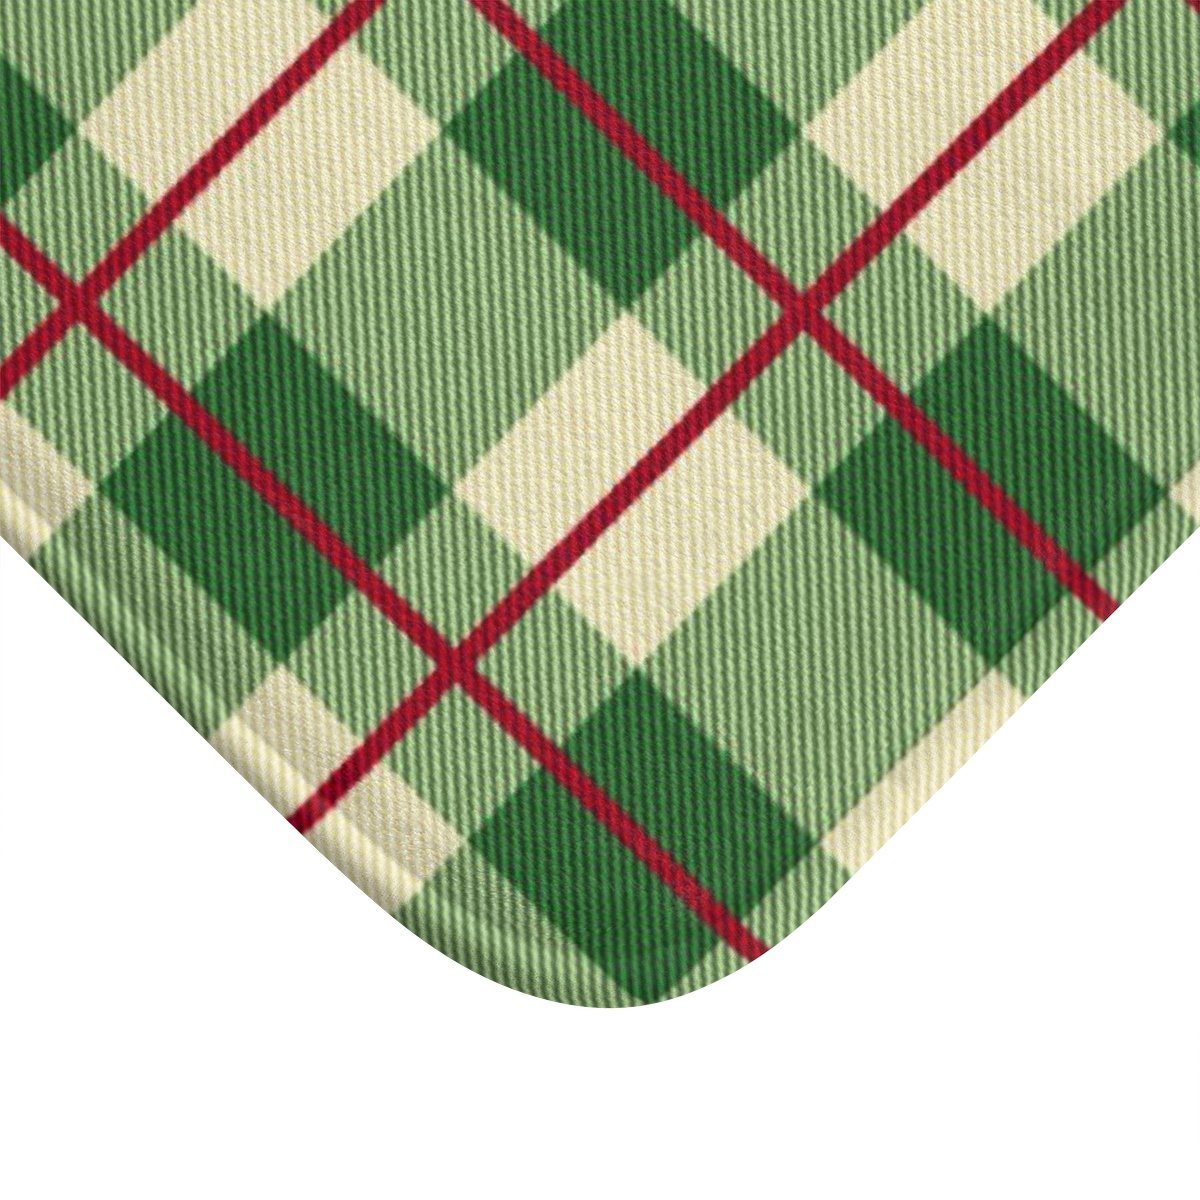 Seasonal & Holiday Christmas Plaid Bath Mat-Bath - Bath Linens - Bath Mats-Maison d'Elite-Large 34x21-Très Elite